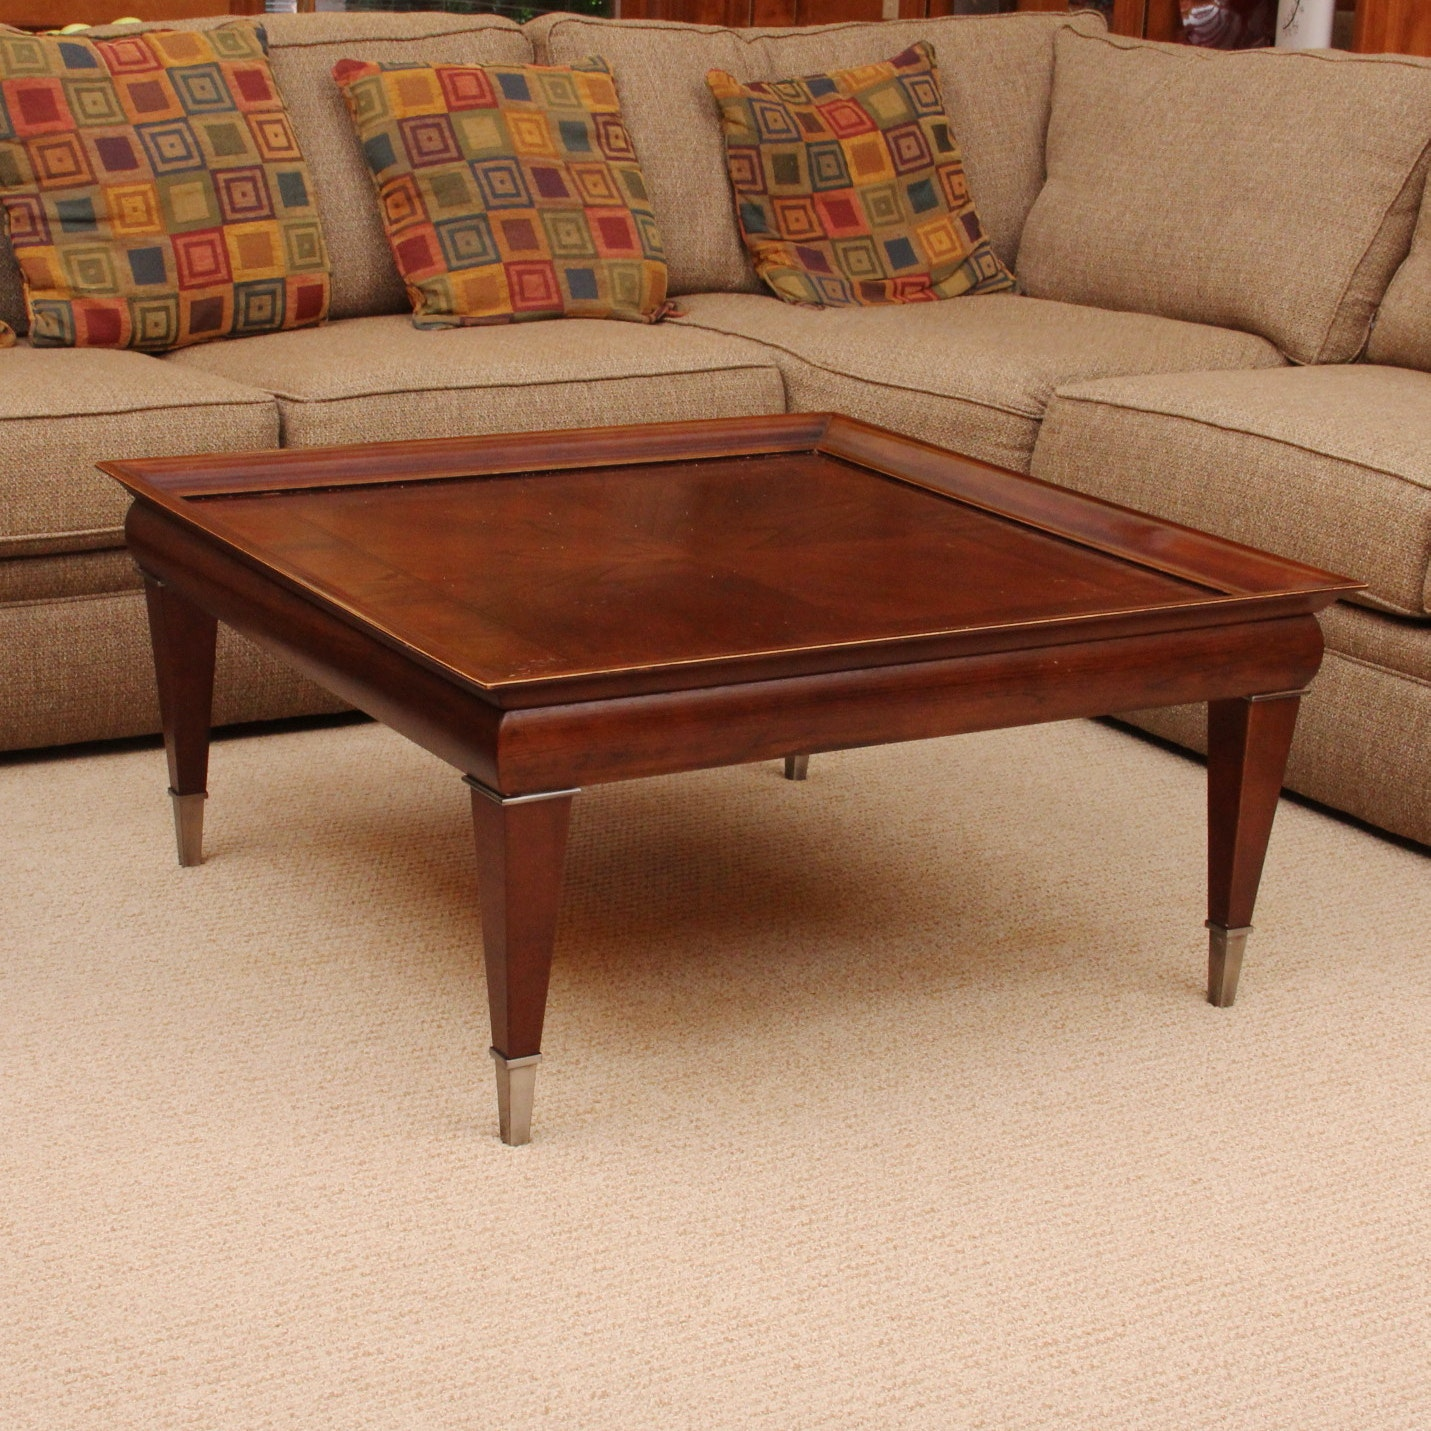 Modern Wood Coffee Table with Metal Accents